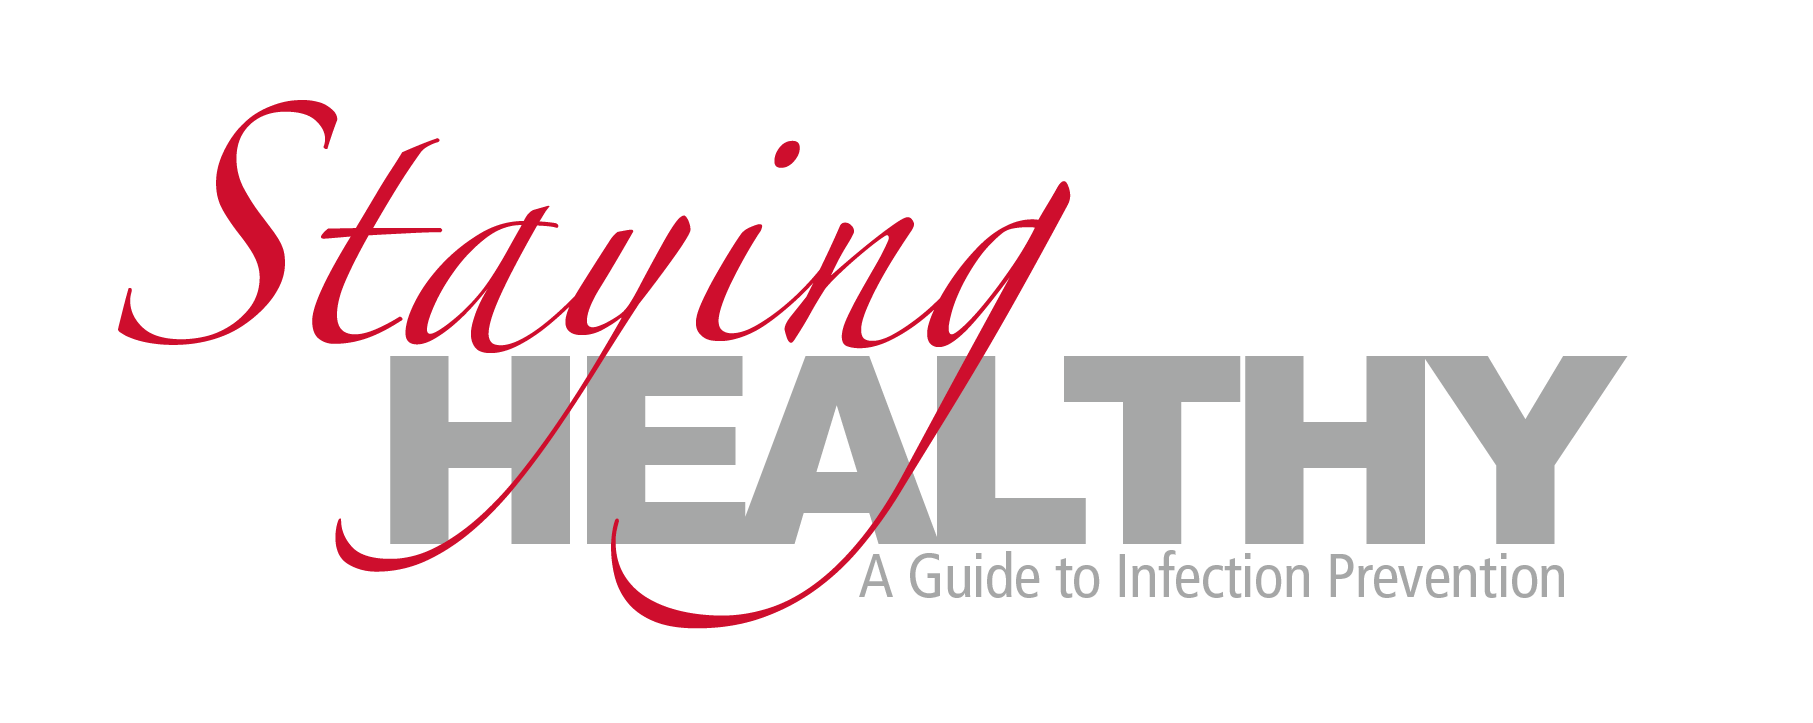 Staying Healthy Infection Prevention